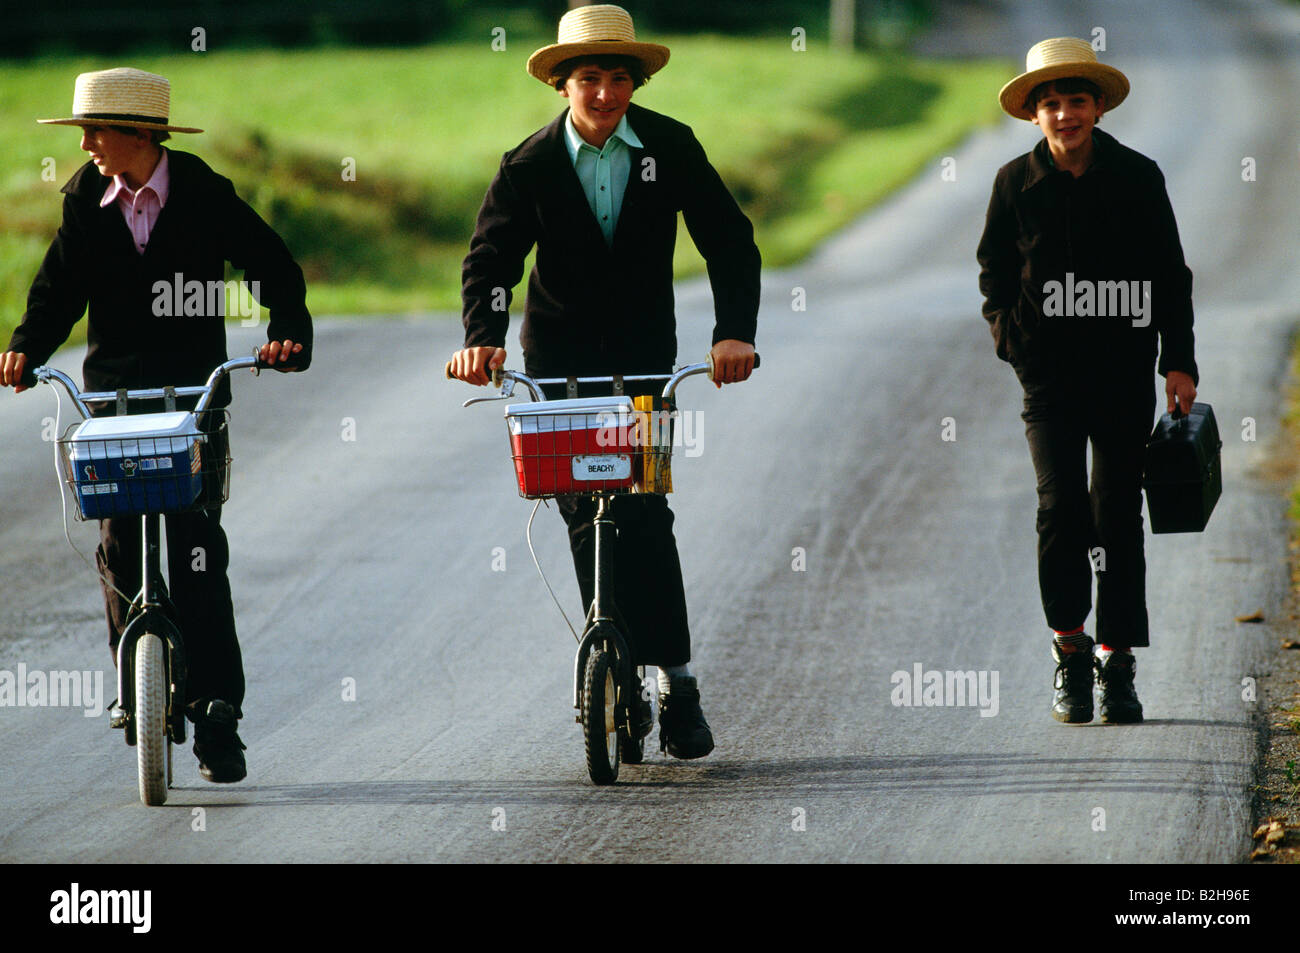 Amish children in traditional plain clothing on scooters on their way home from school, Lancaster County, Pennsylvania, - Stock Image